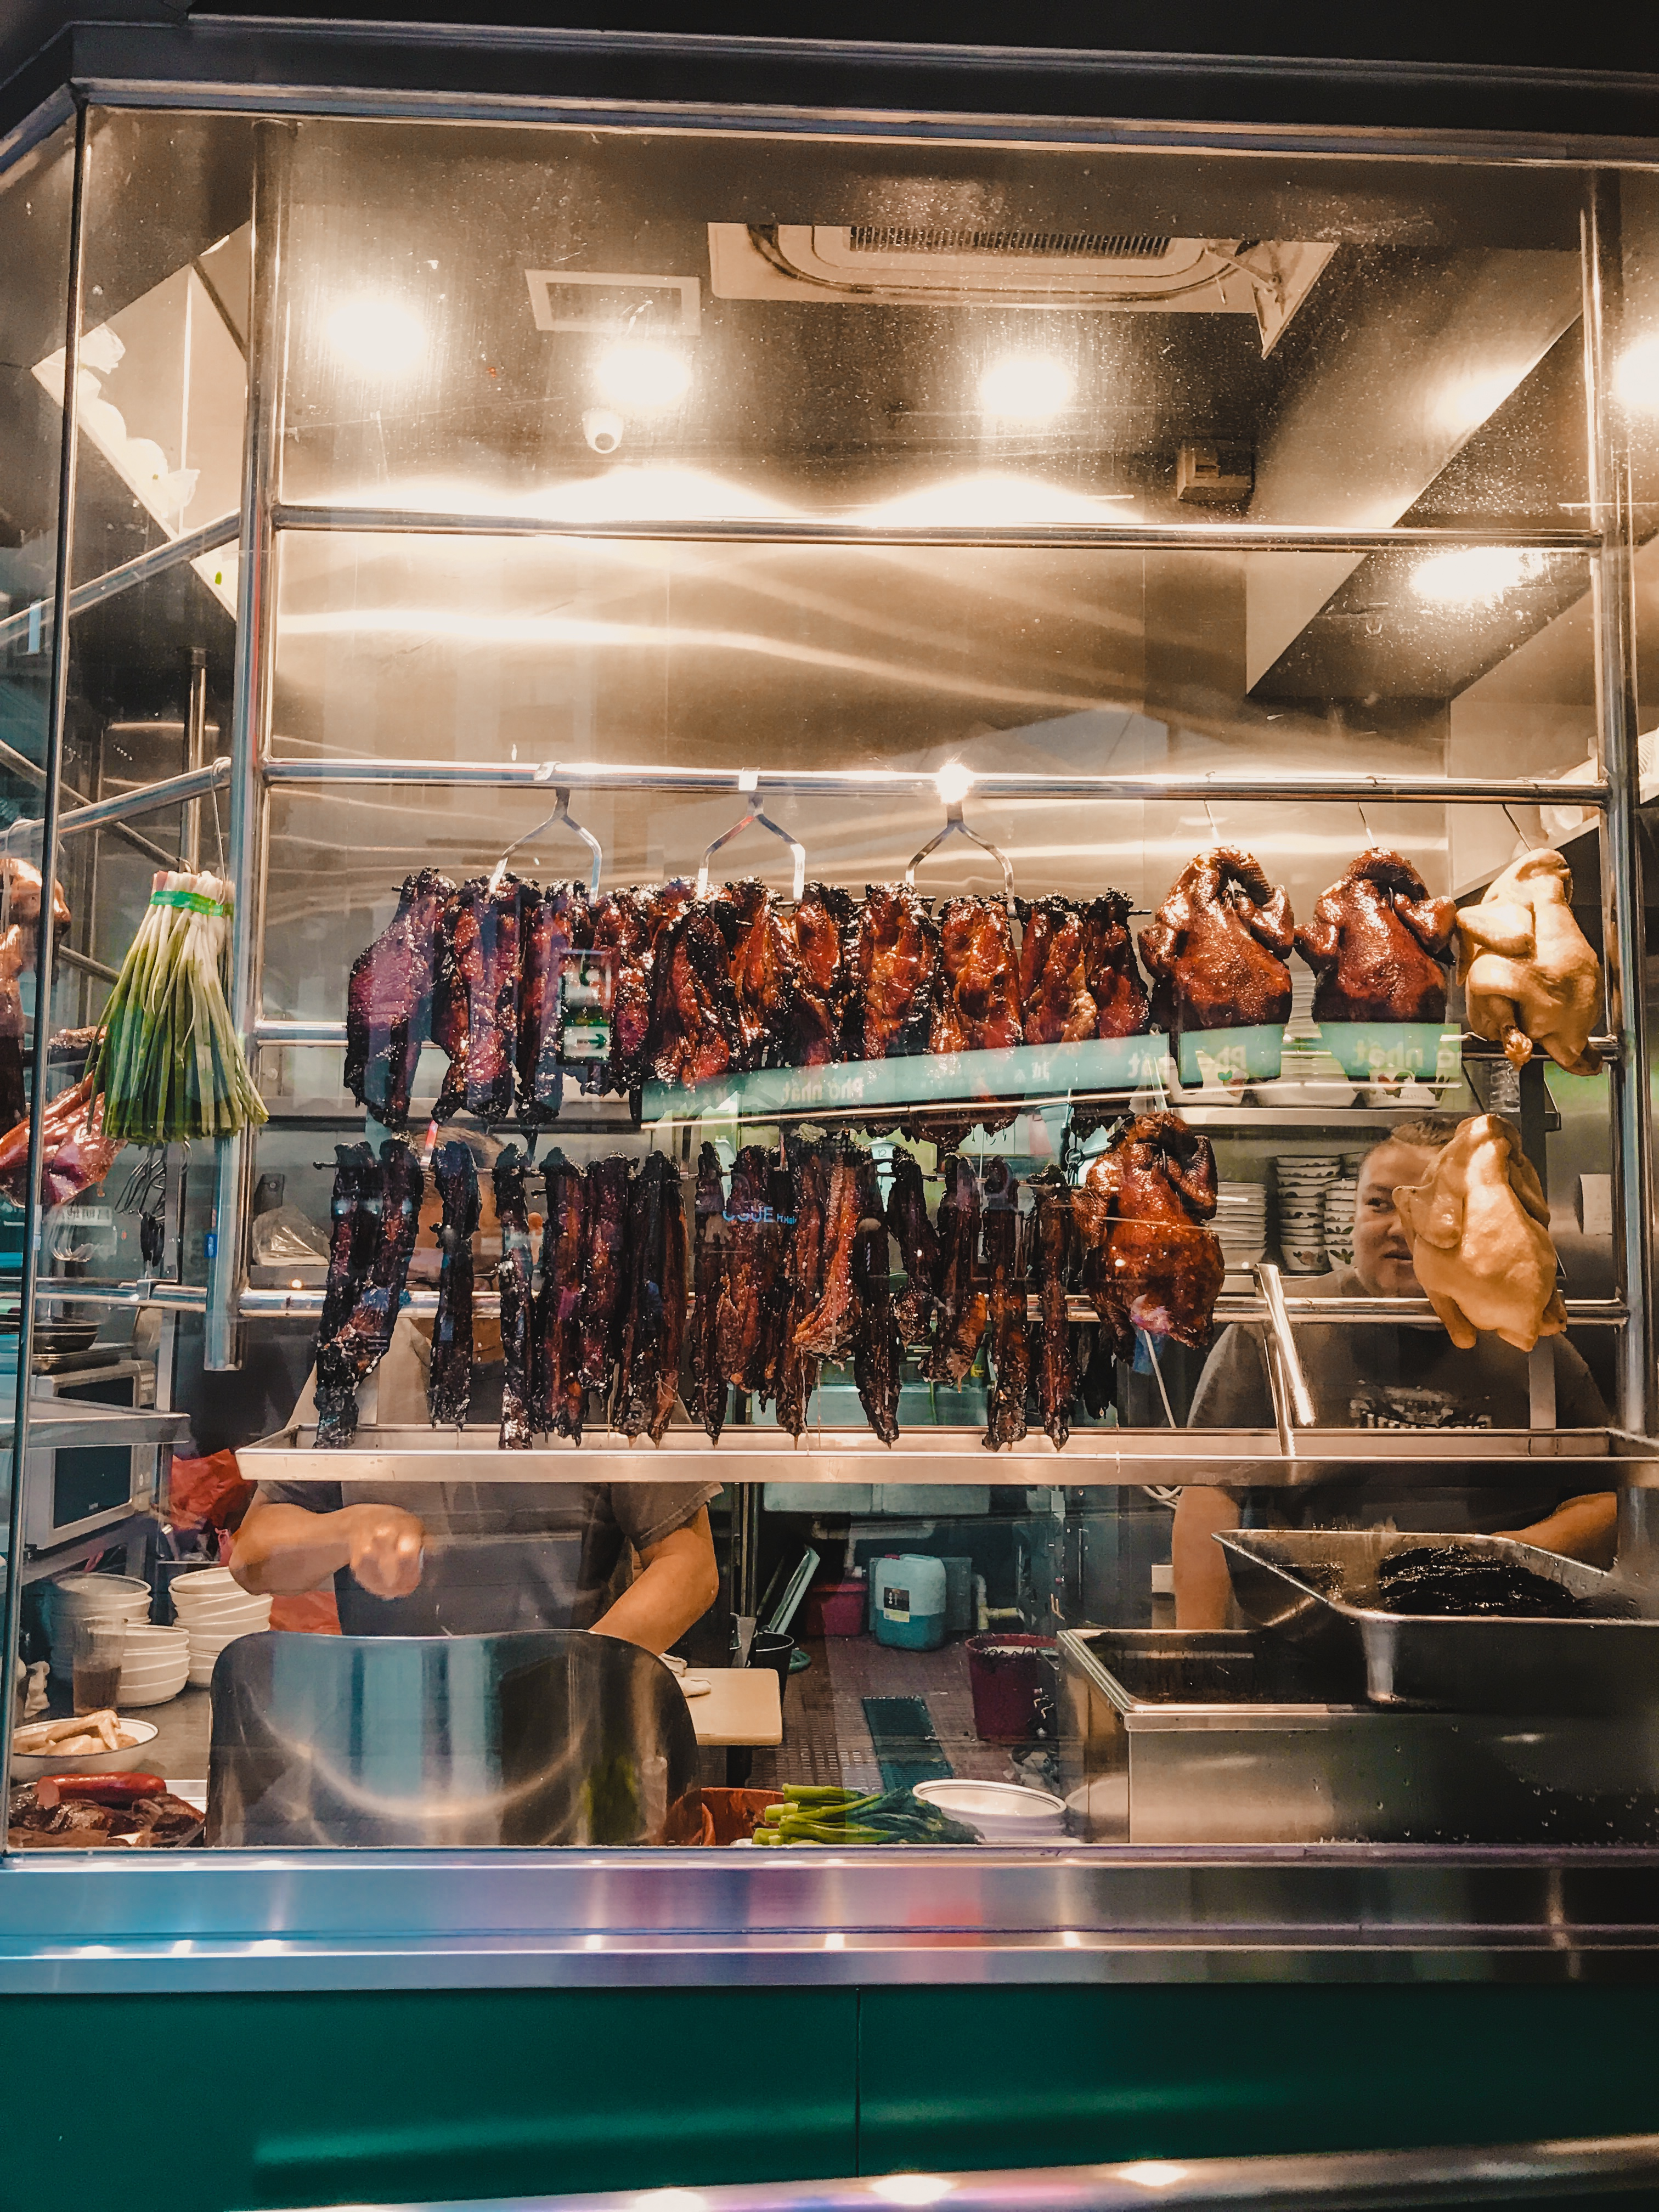 BBQ meats out on display in Hong Kong